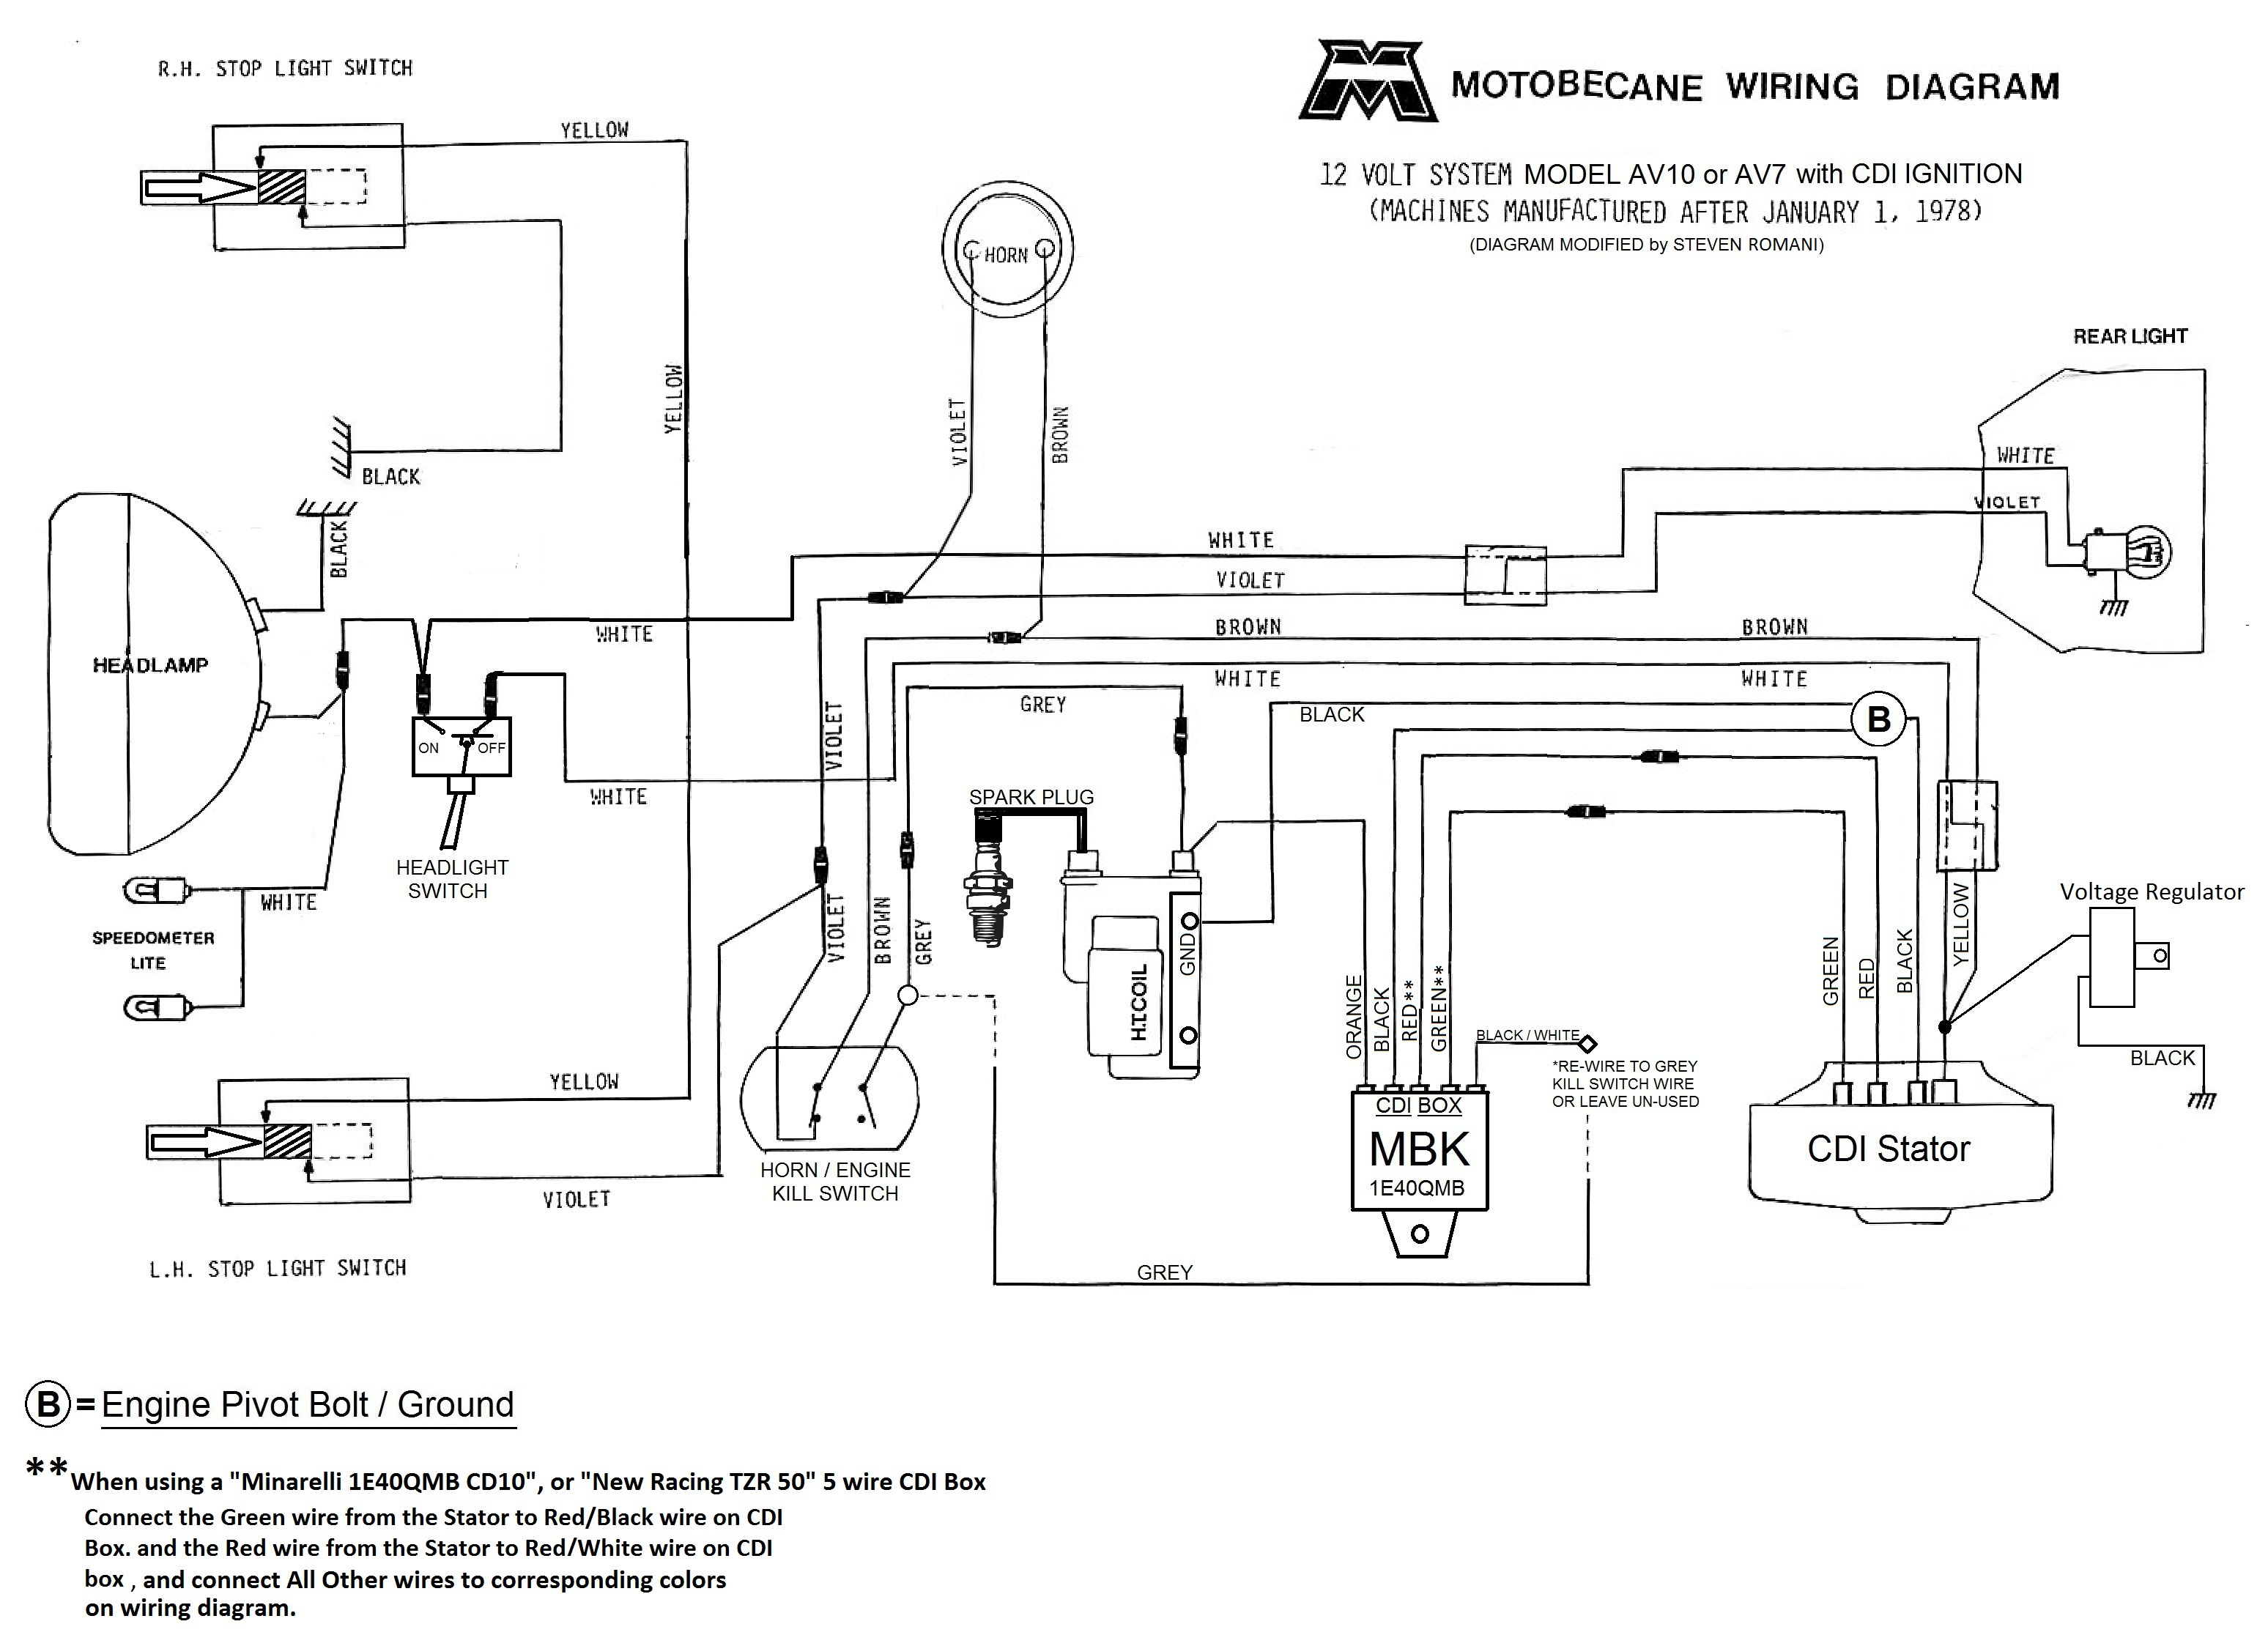 Yamaha Electric Golf Cart Wiring Diagram Jn8 Worksheet And G2 Gas Harness Rh Bedroomfurniture Club G1